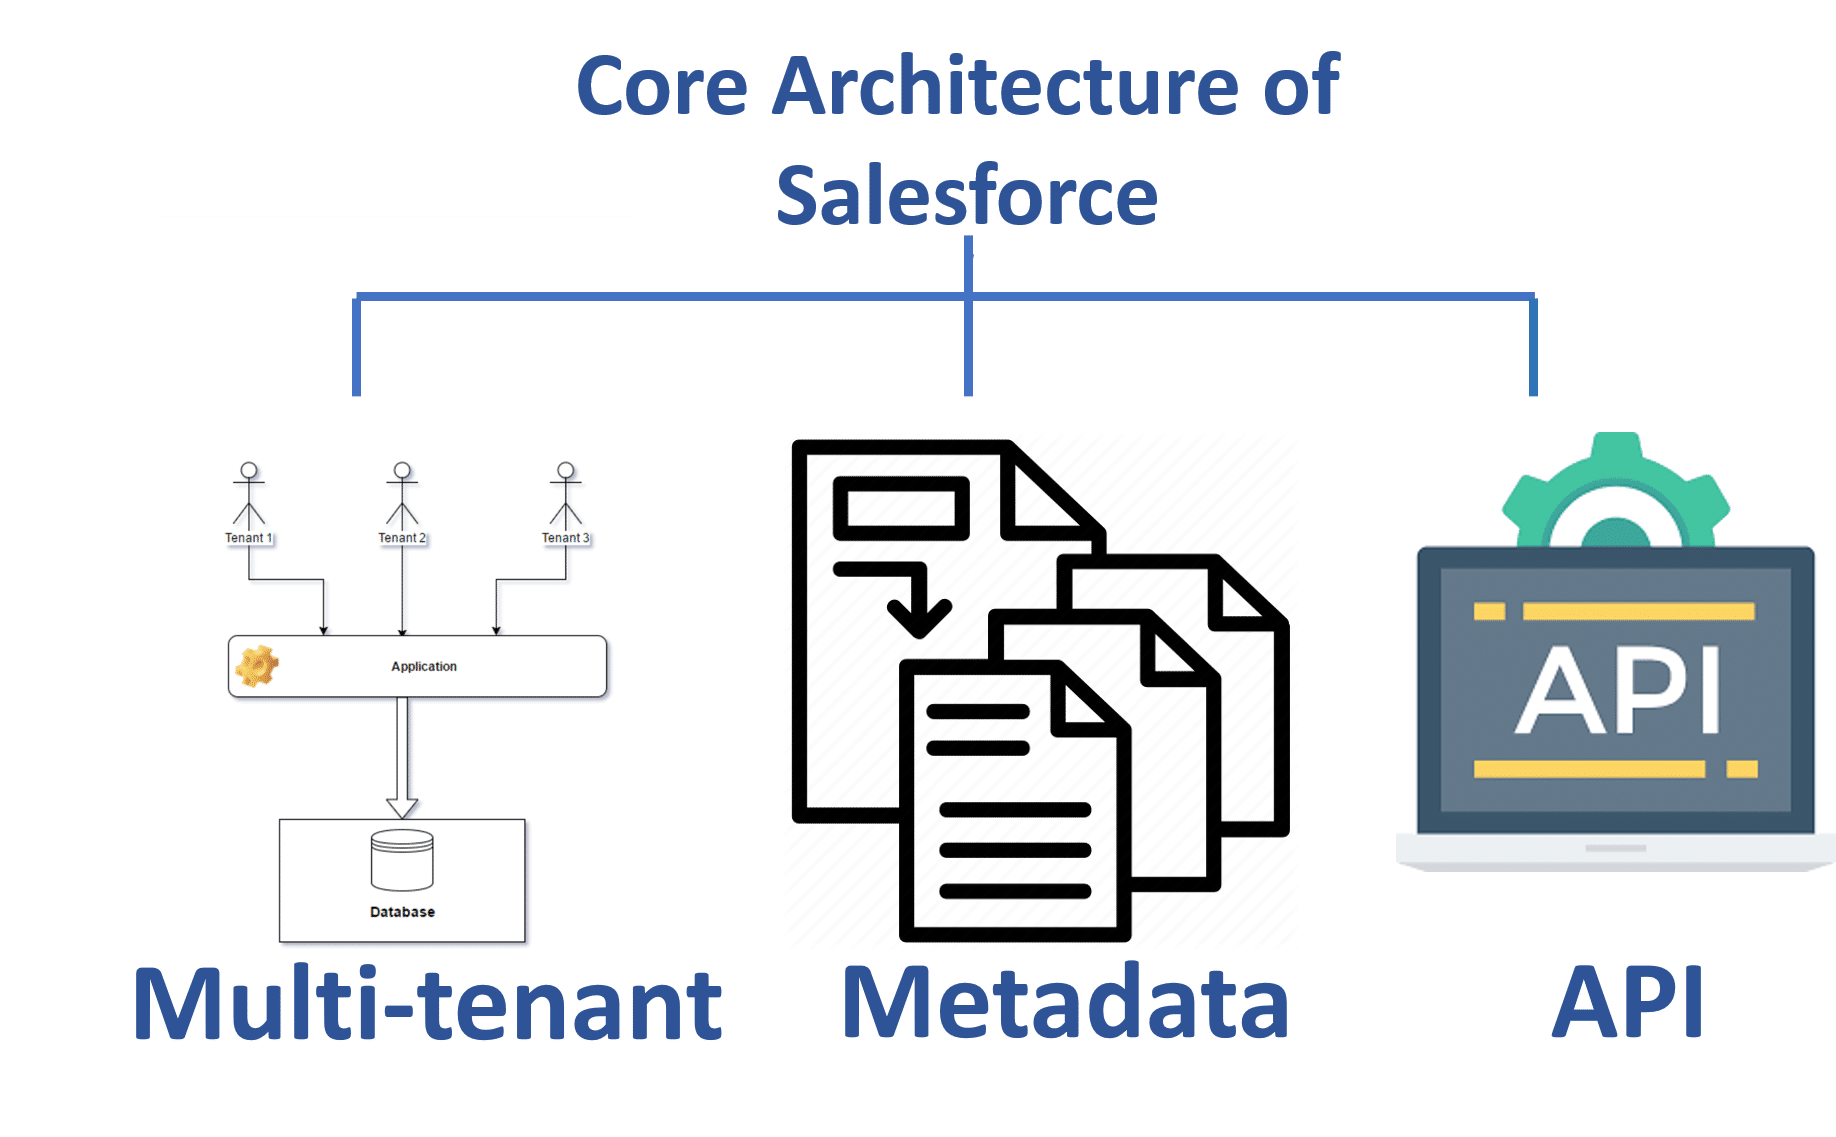 Core Architecture of Salesforce